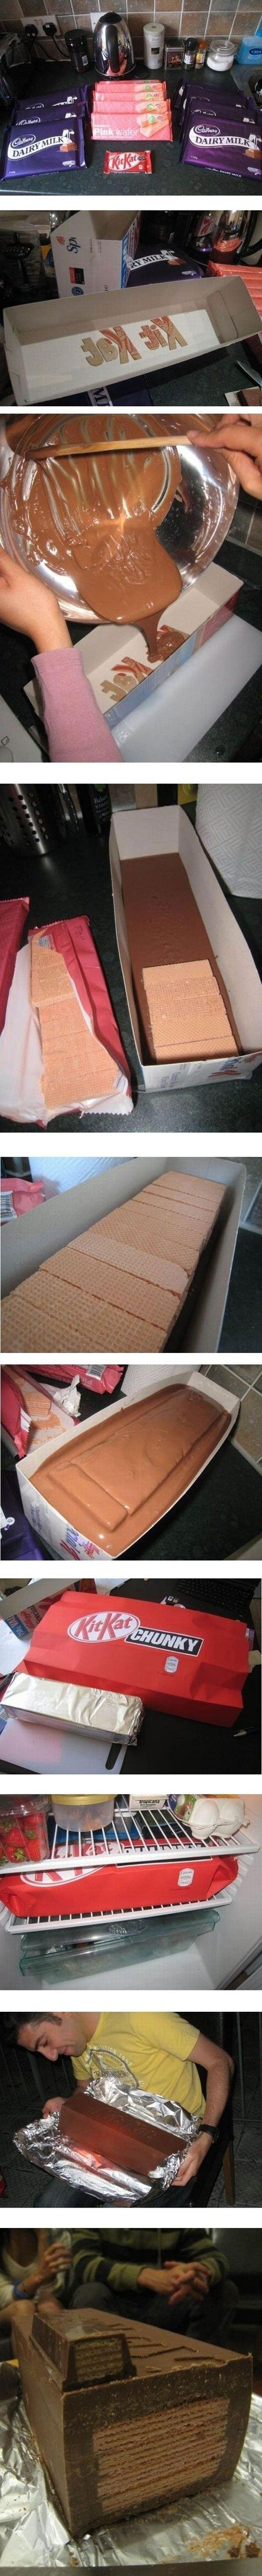 How to make a huge Kit Kat! THIS IS AWESOME! OMG this looks sooo cool!!